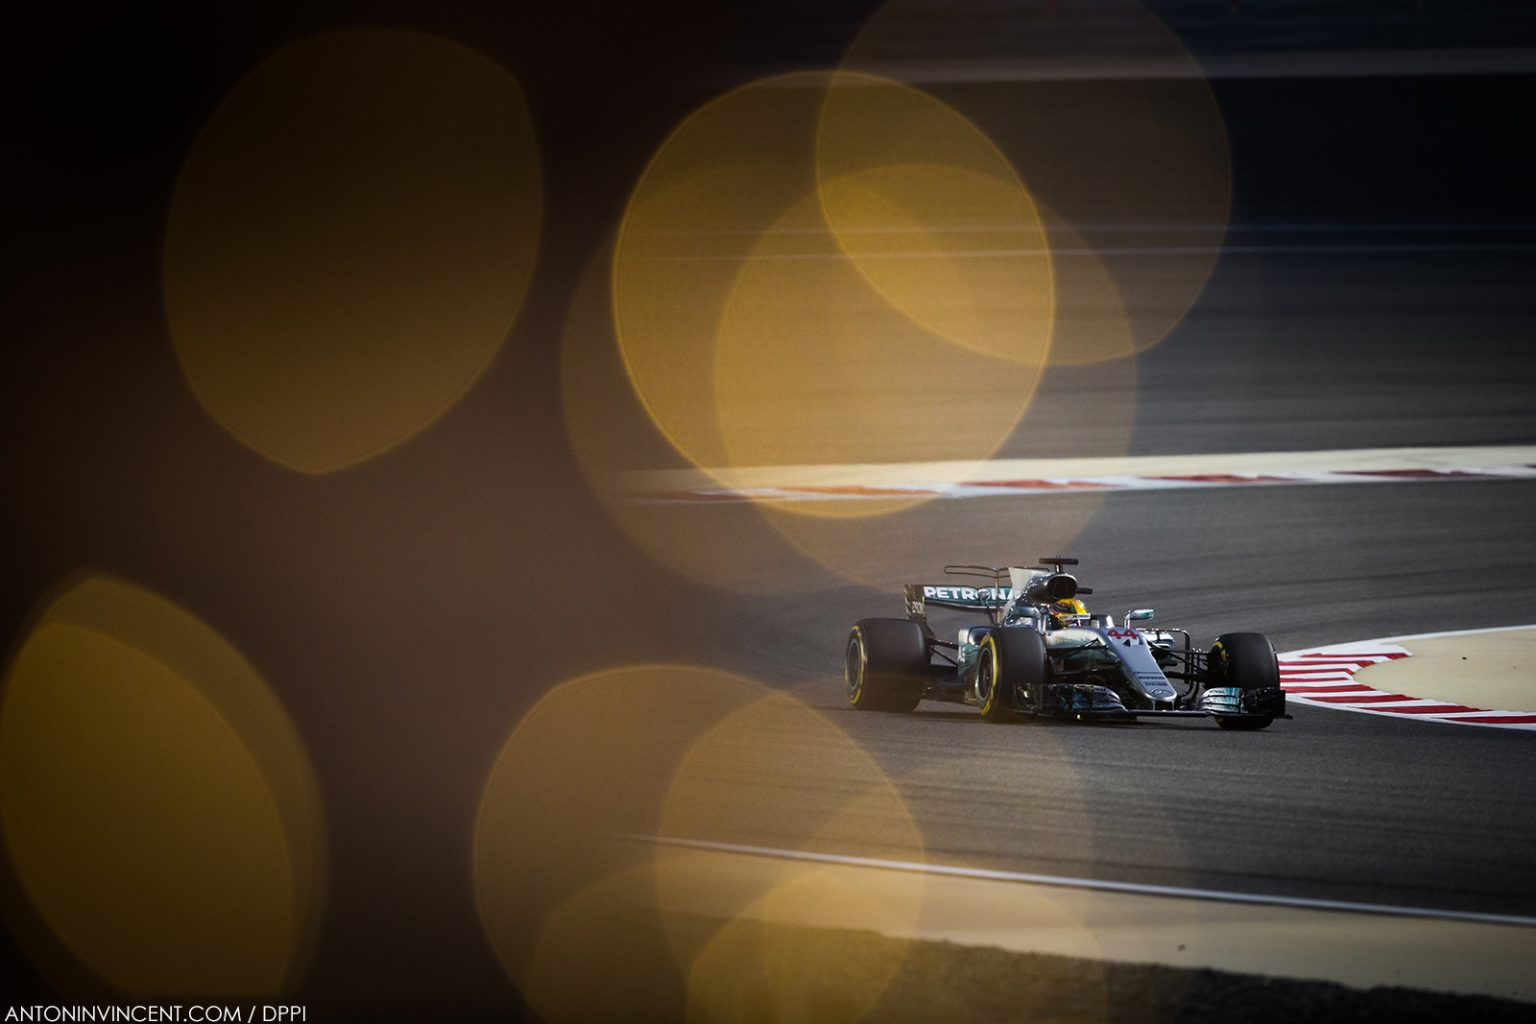 44 HAMILTON Lewis (gbr) Mercedes W08 Hybrid EQ Power+ team Mercedes GP, action         during 2017 Formula 1 FIA world championship, Bahrain Grand Prix, at Sakhir from April 13 to 16  - Photo Antonin Vincent / DPPI